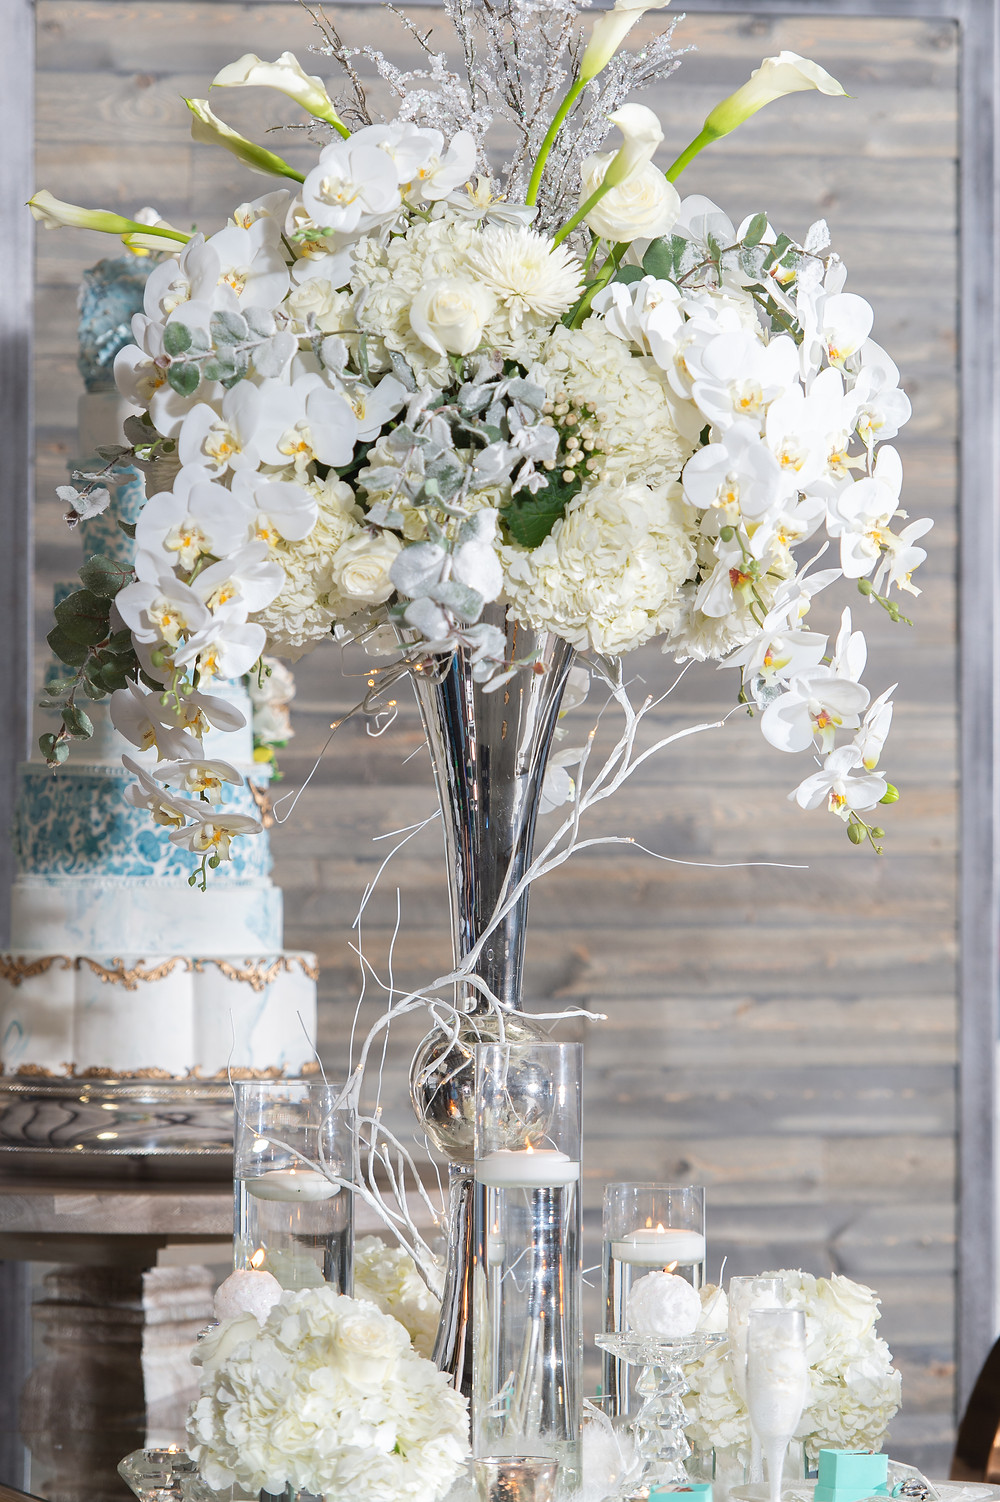 Large custom floral arrangement for wedding with smaller arrangements on table